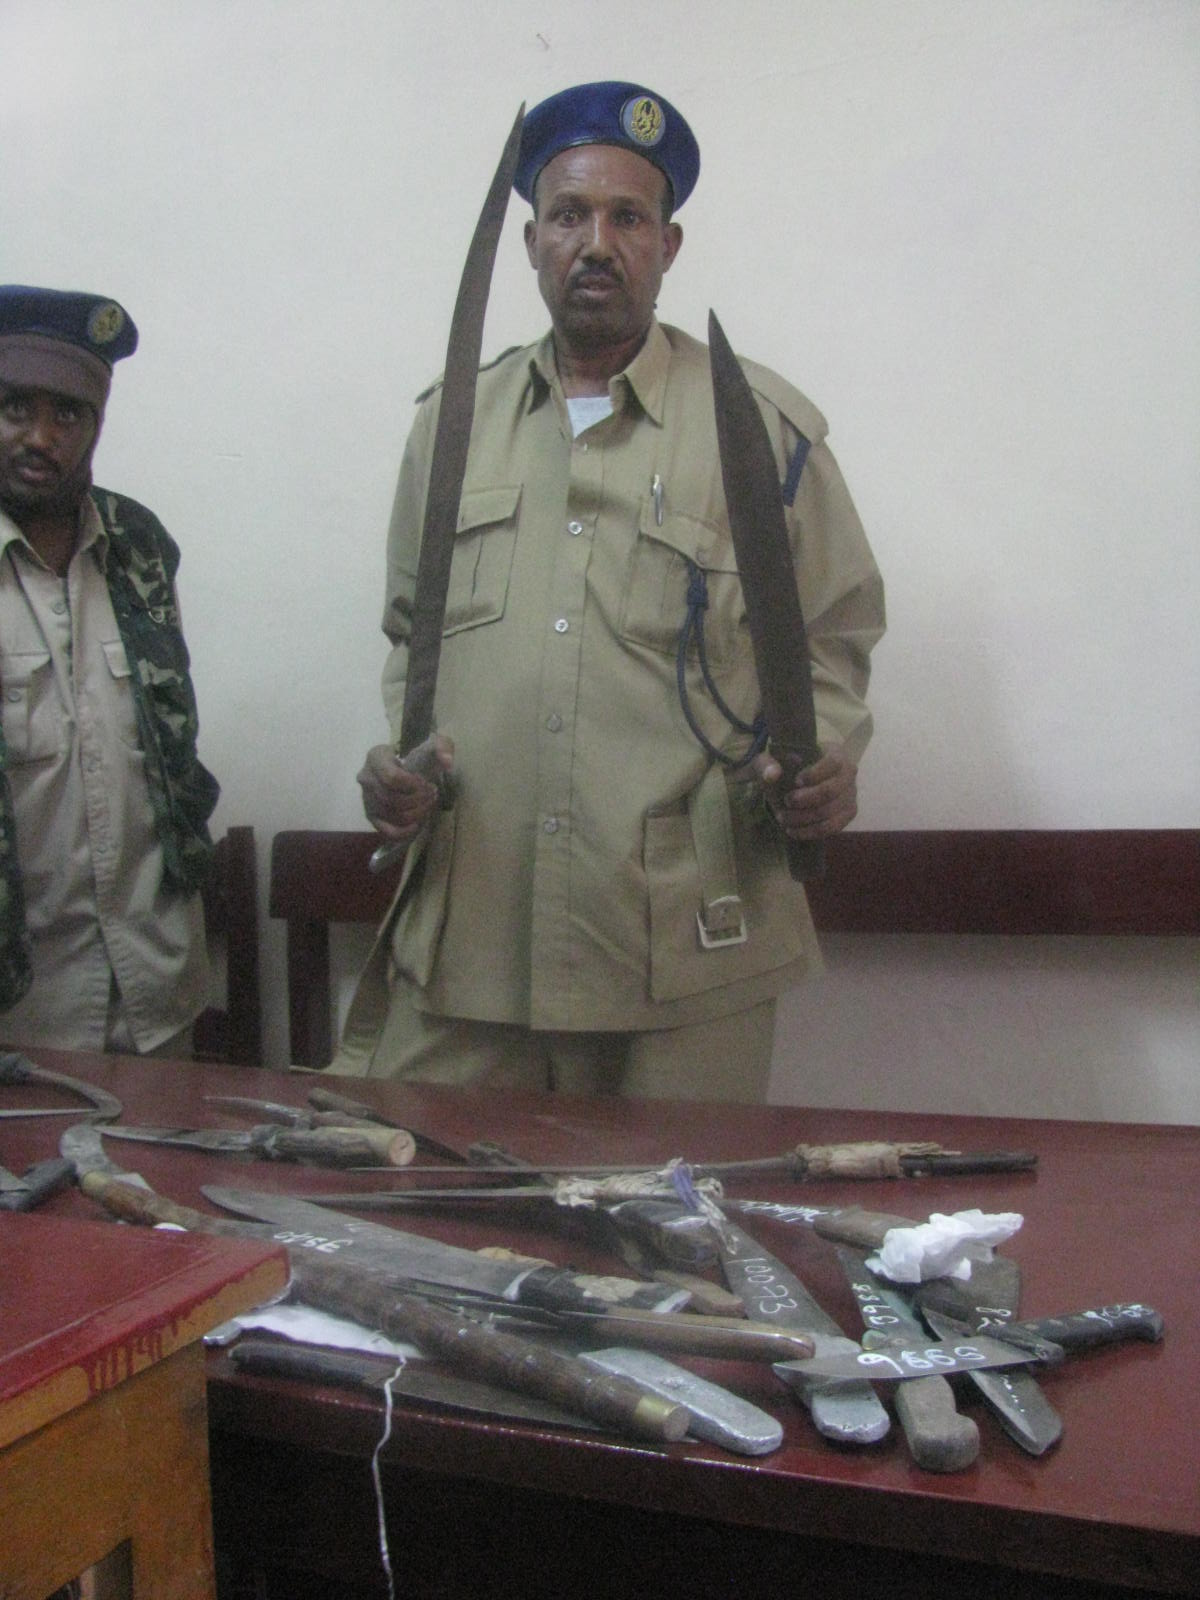 Knives recovered from street children in Hargeisa on display at the town's police station